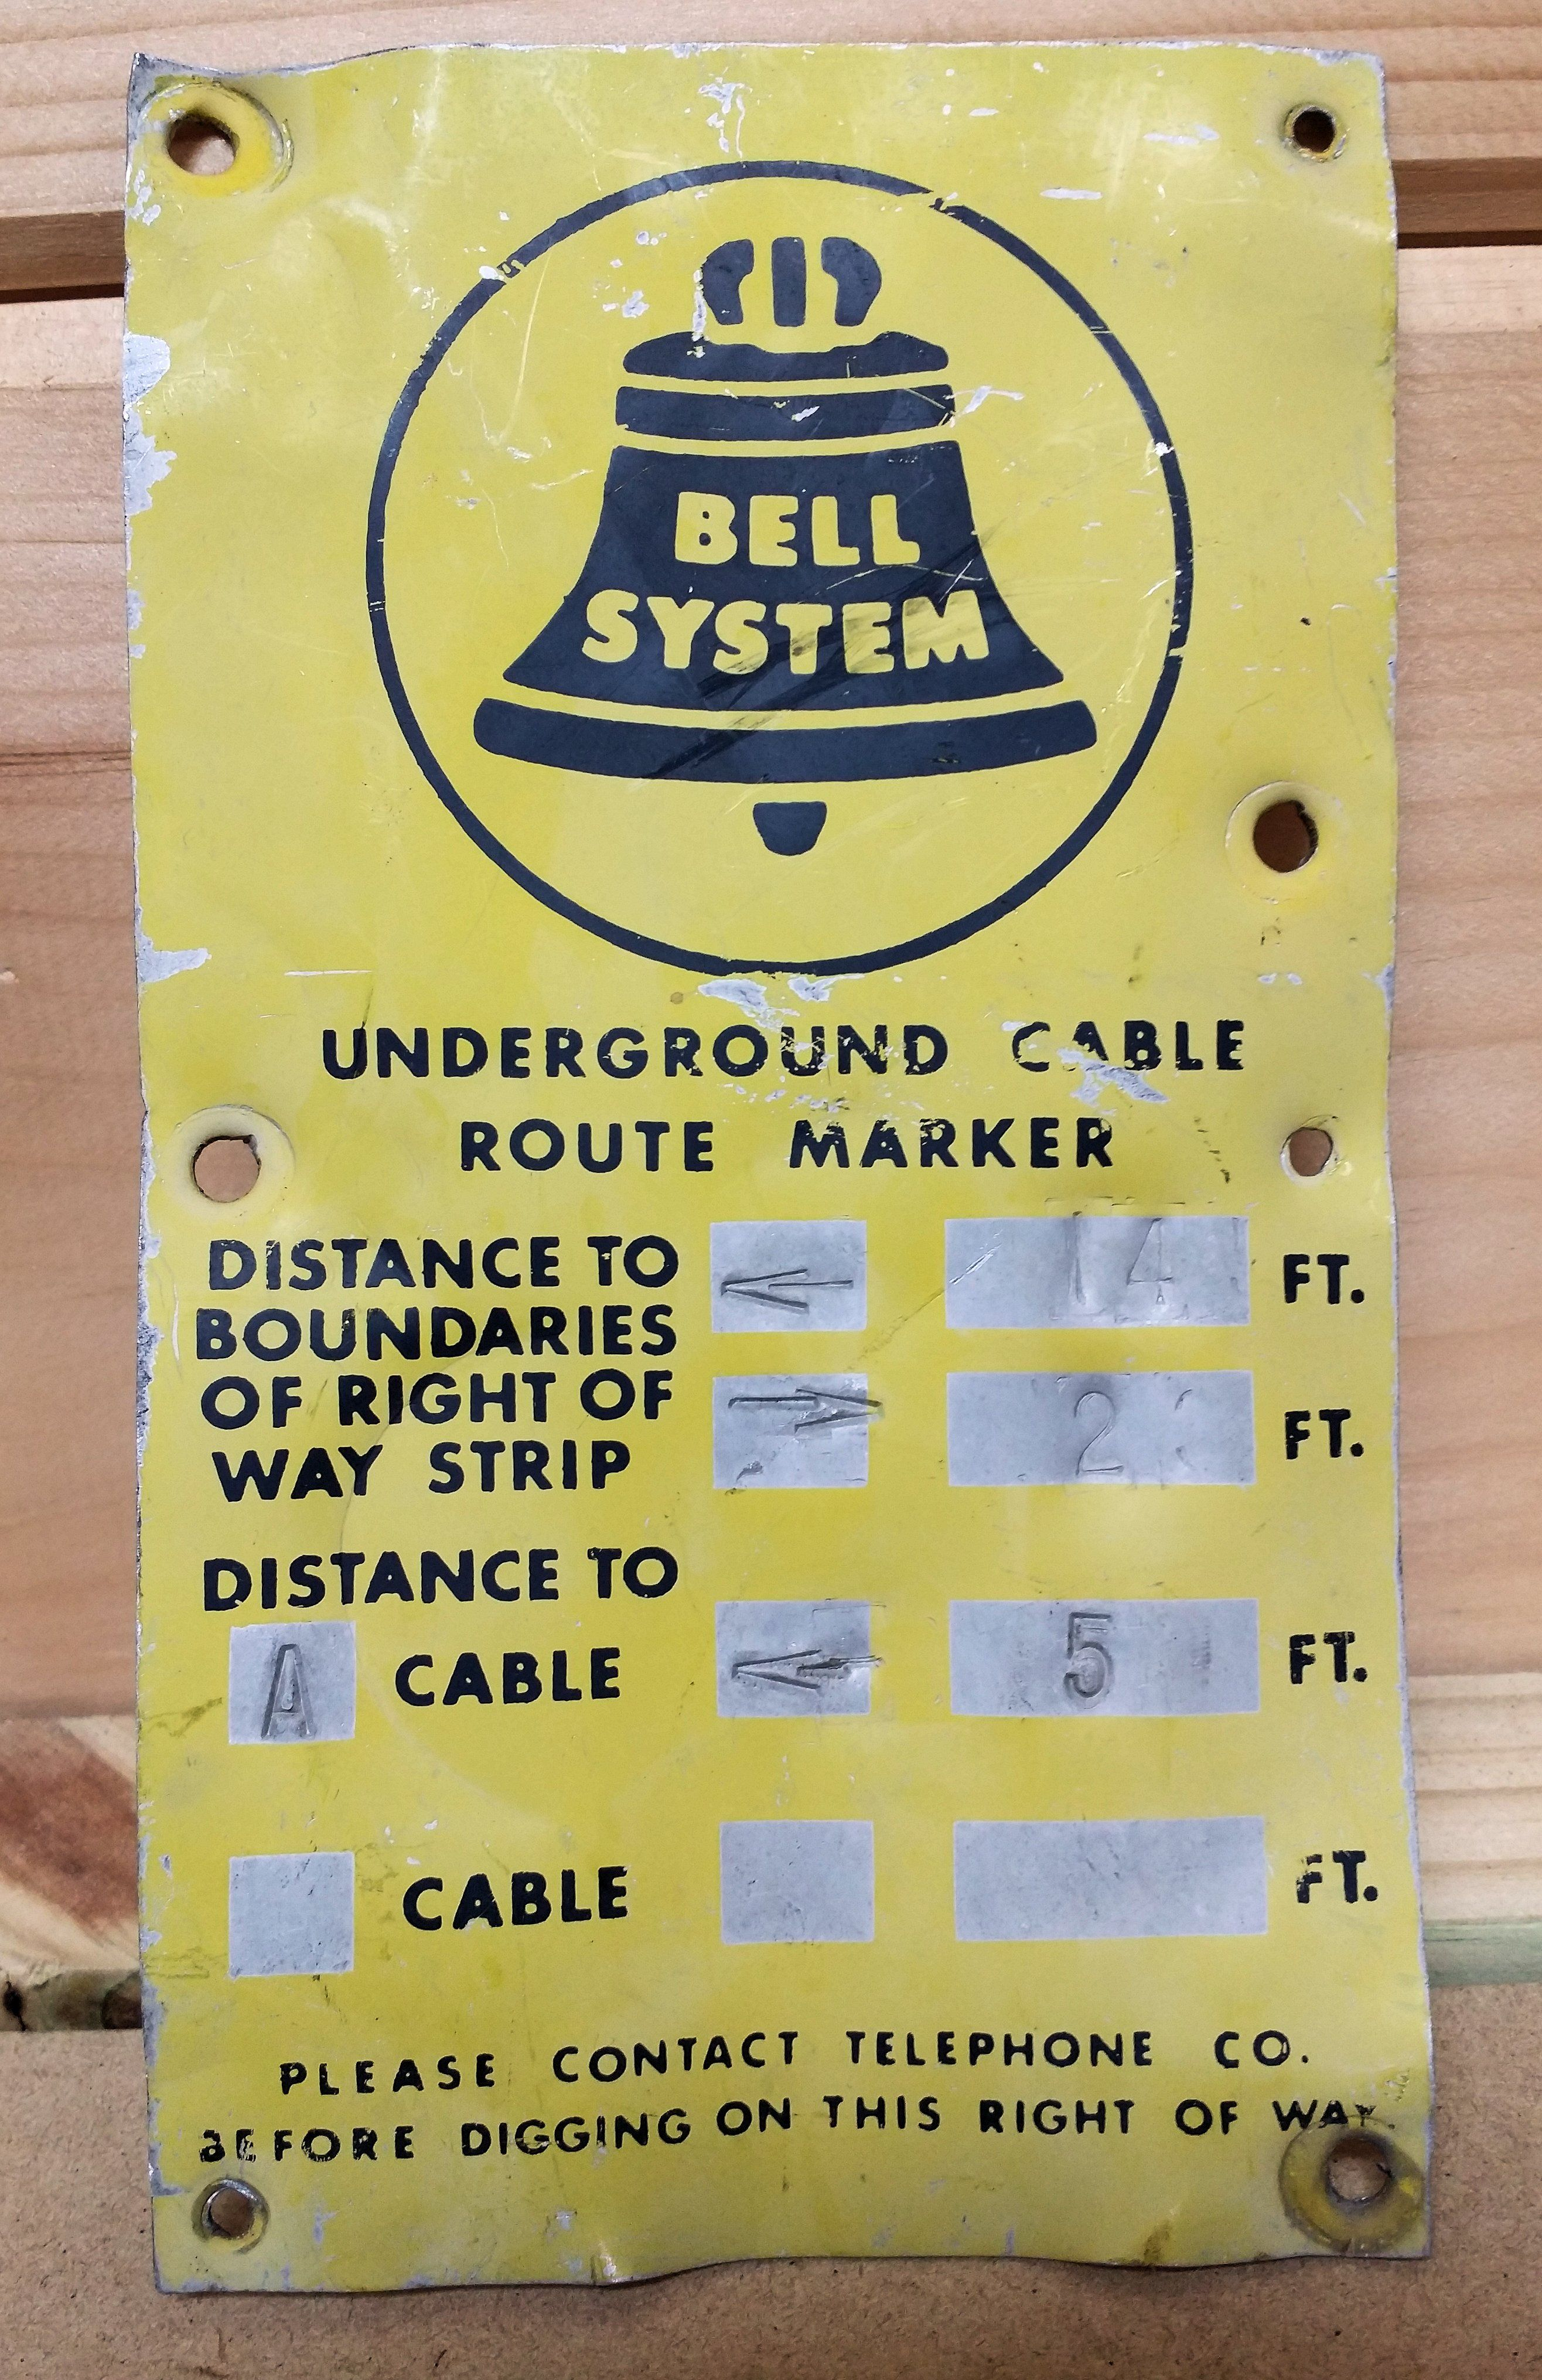 Bell System buried cable sign used to identify location of